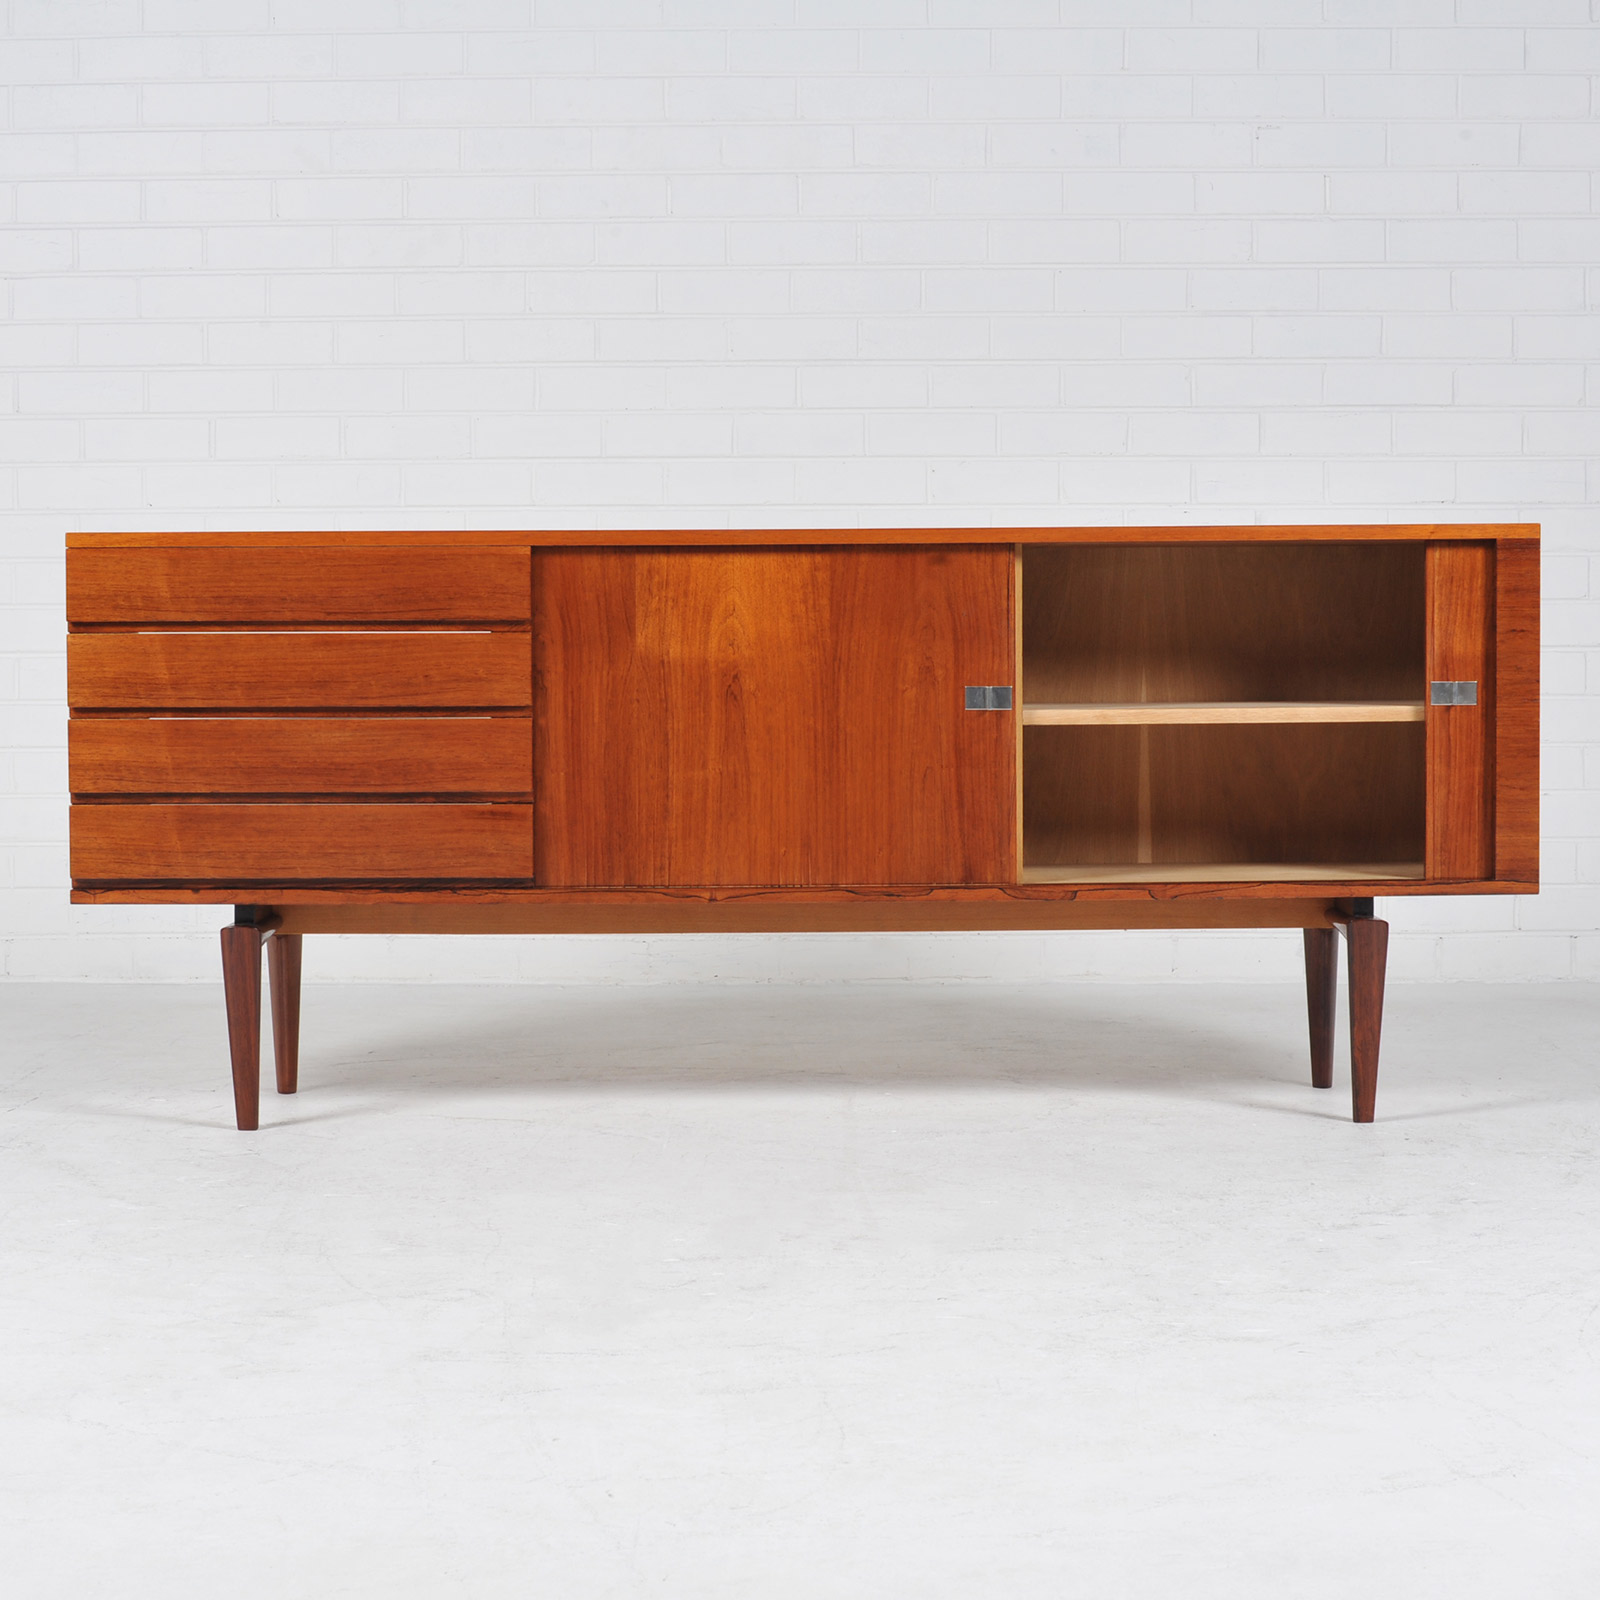 sideboard by h w klein in rosewood with tambour doors 1960s denmark modern times. Black Bedroom Furniture Sets. Home Design Ideas